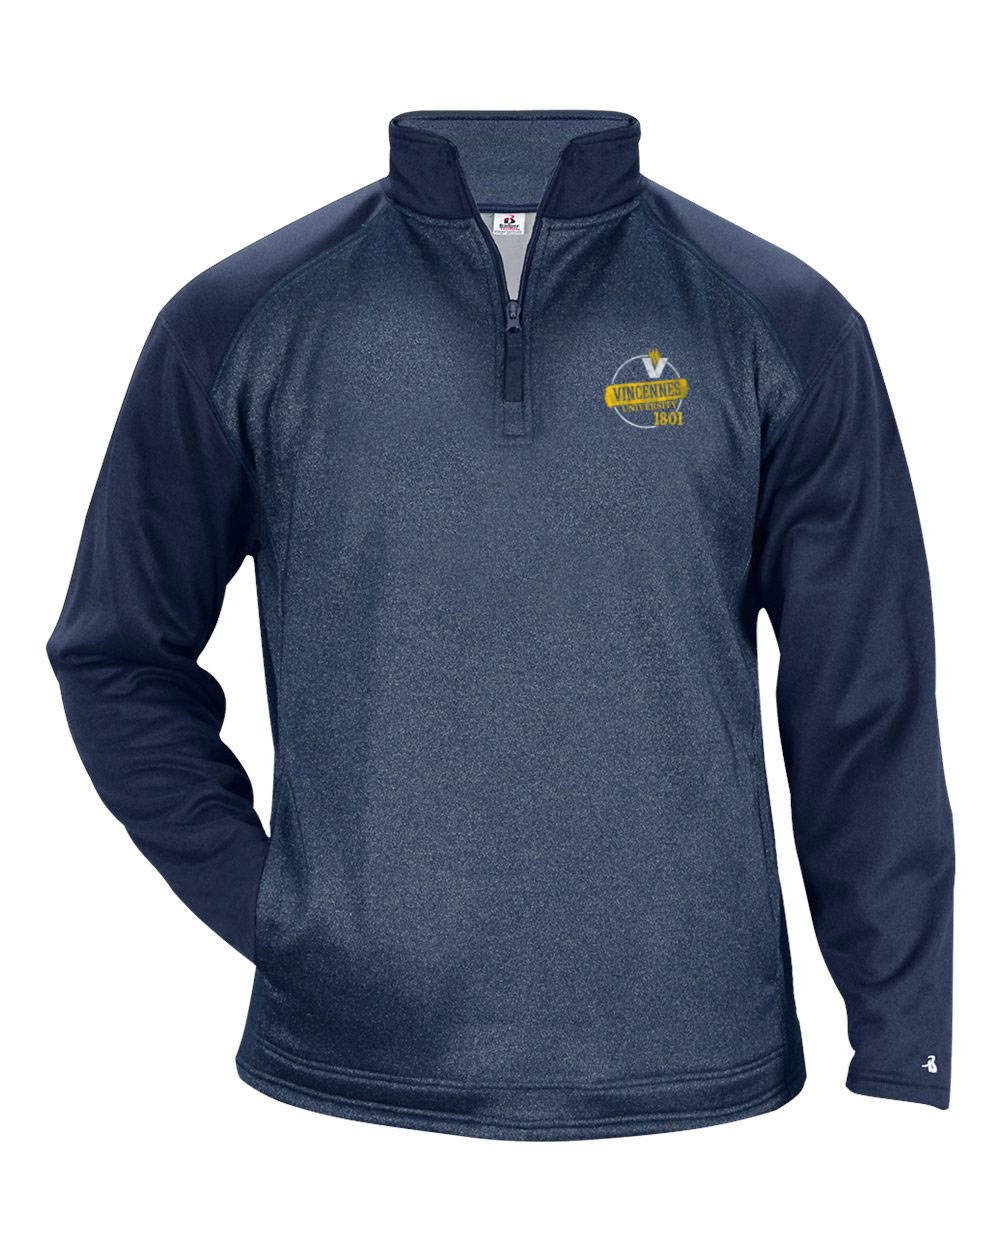 1/4 ZIP FLEECE (S-2X)